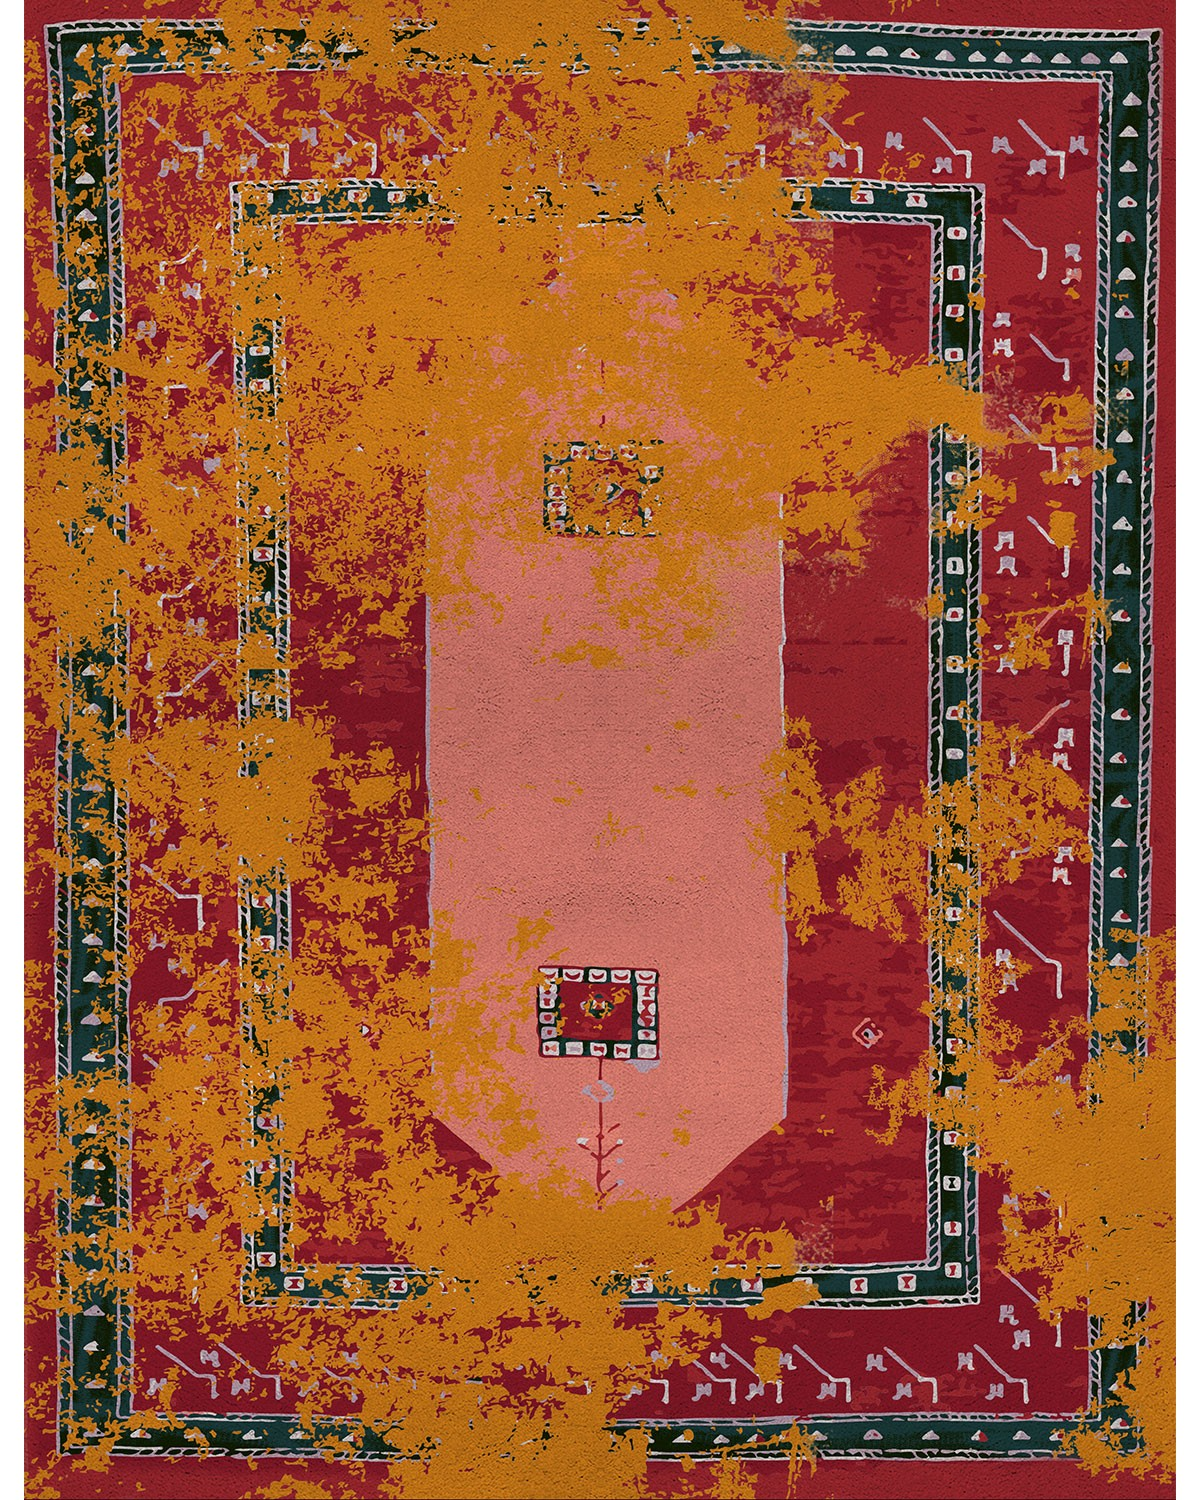 Top Dining Room Rugs You Will Fall In Love With (Part V) dining room rugs Top Dining Room Rugs You Will Fall In Love With (Part V) medina